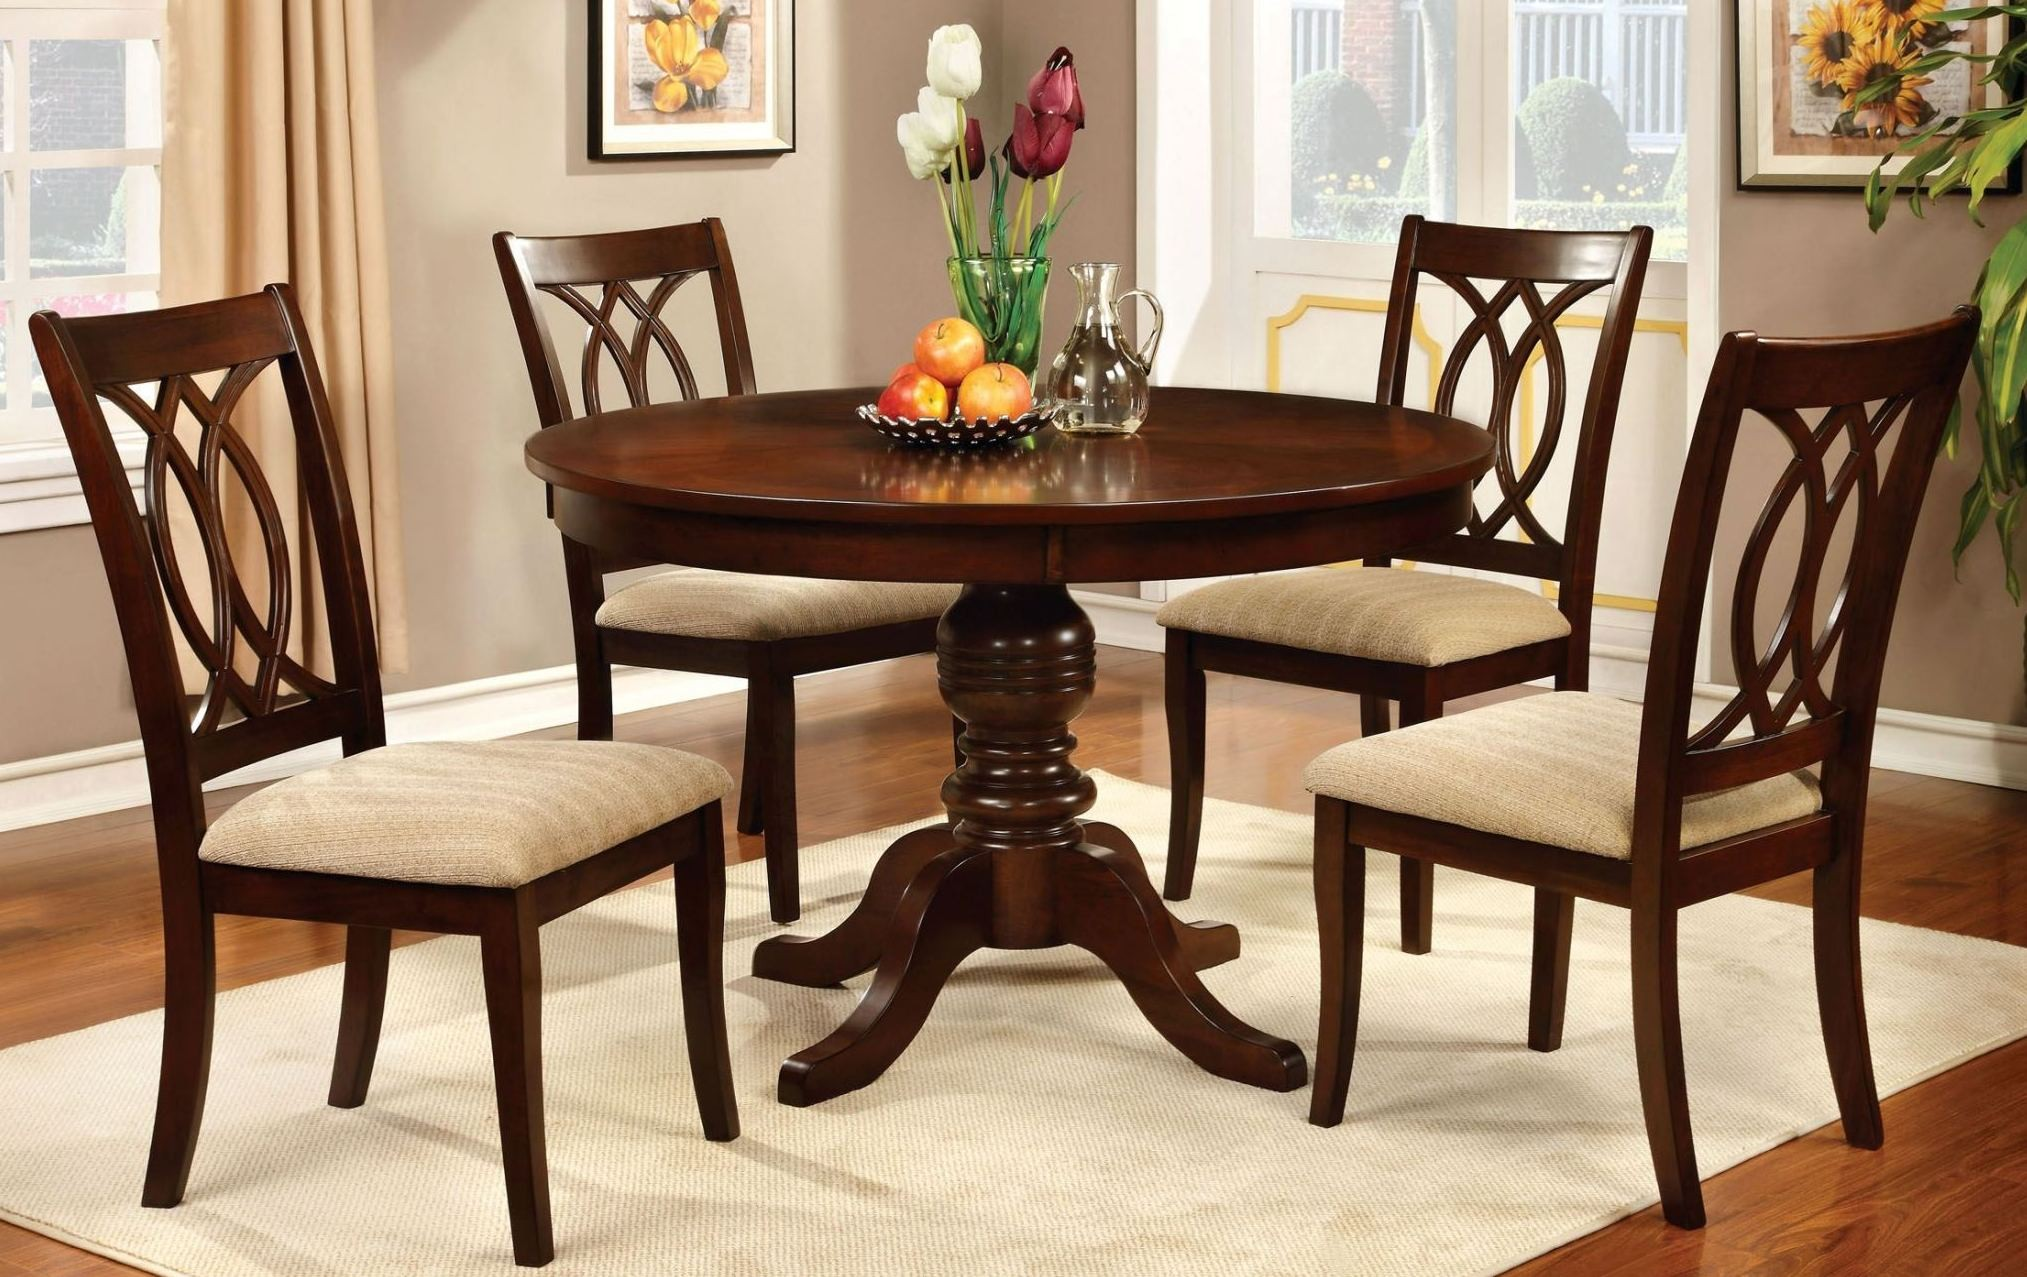 Carlisle brown cherry round pedestal dining room set from for Cherry dining room set